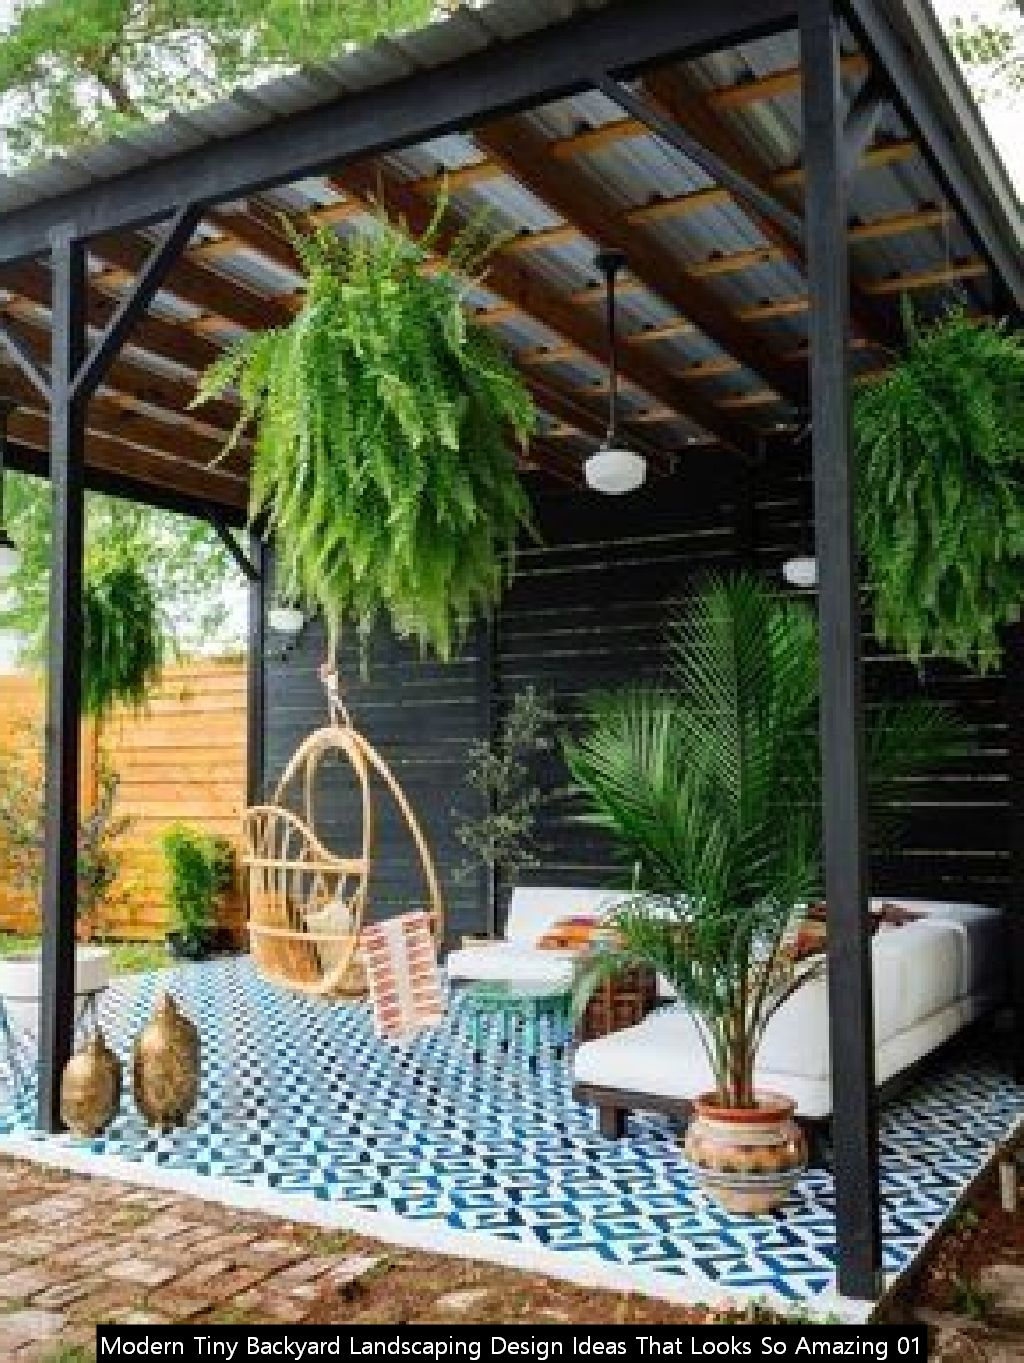 Modern Tiny Backyard Landscaping Design Ideas That Looks So Amazing 01